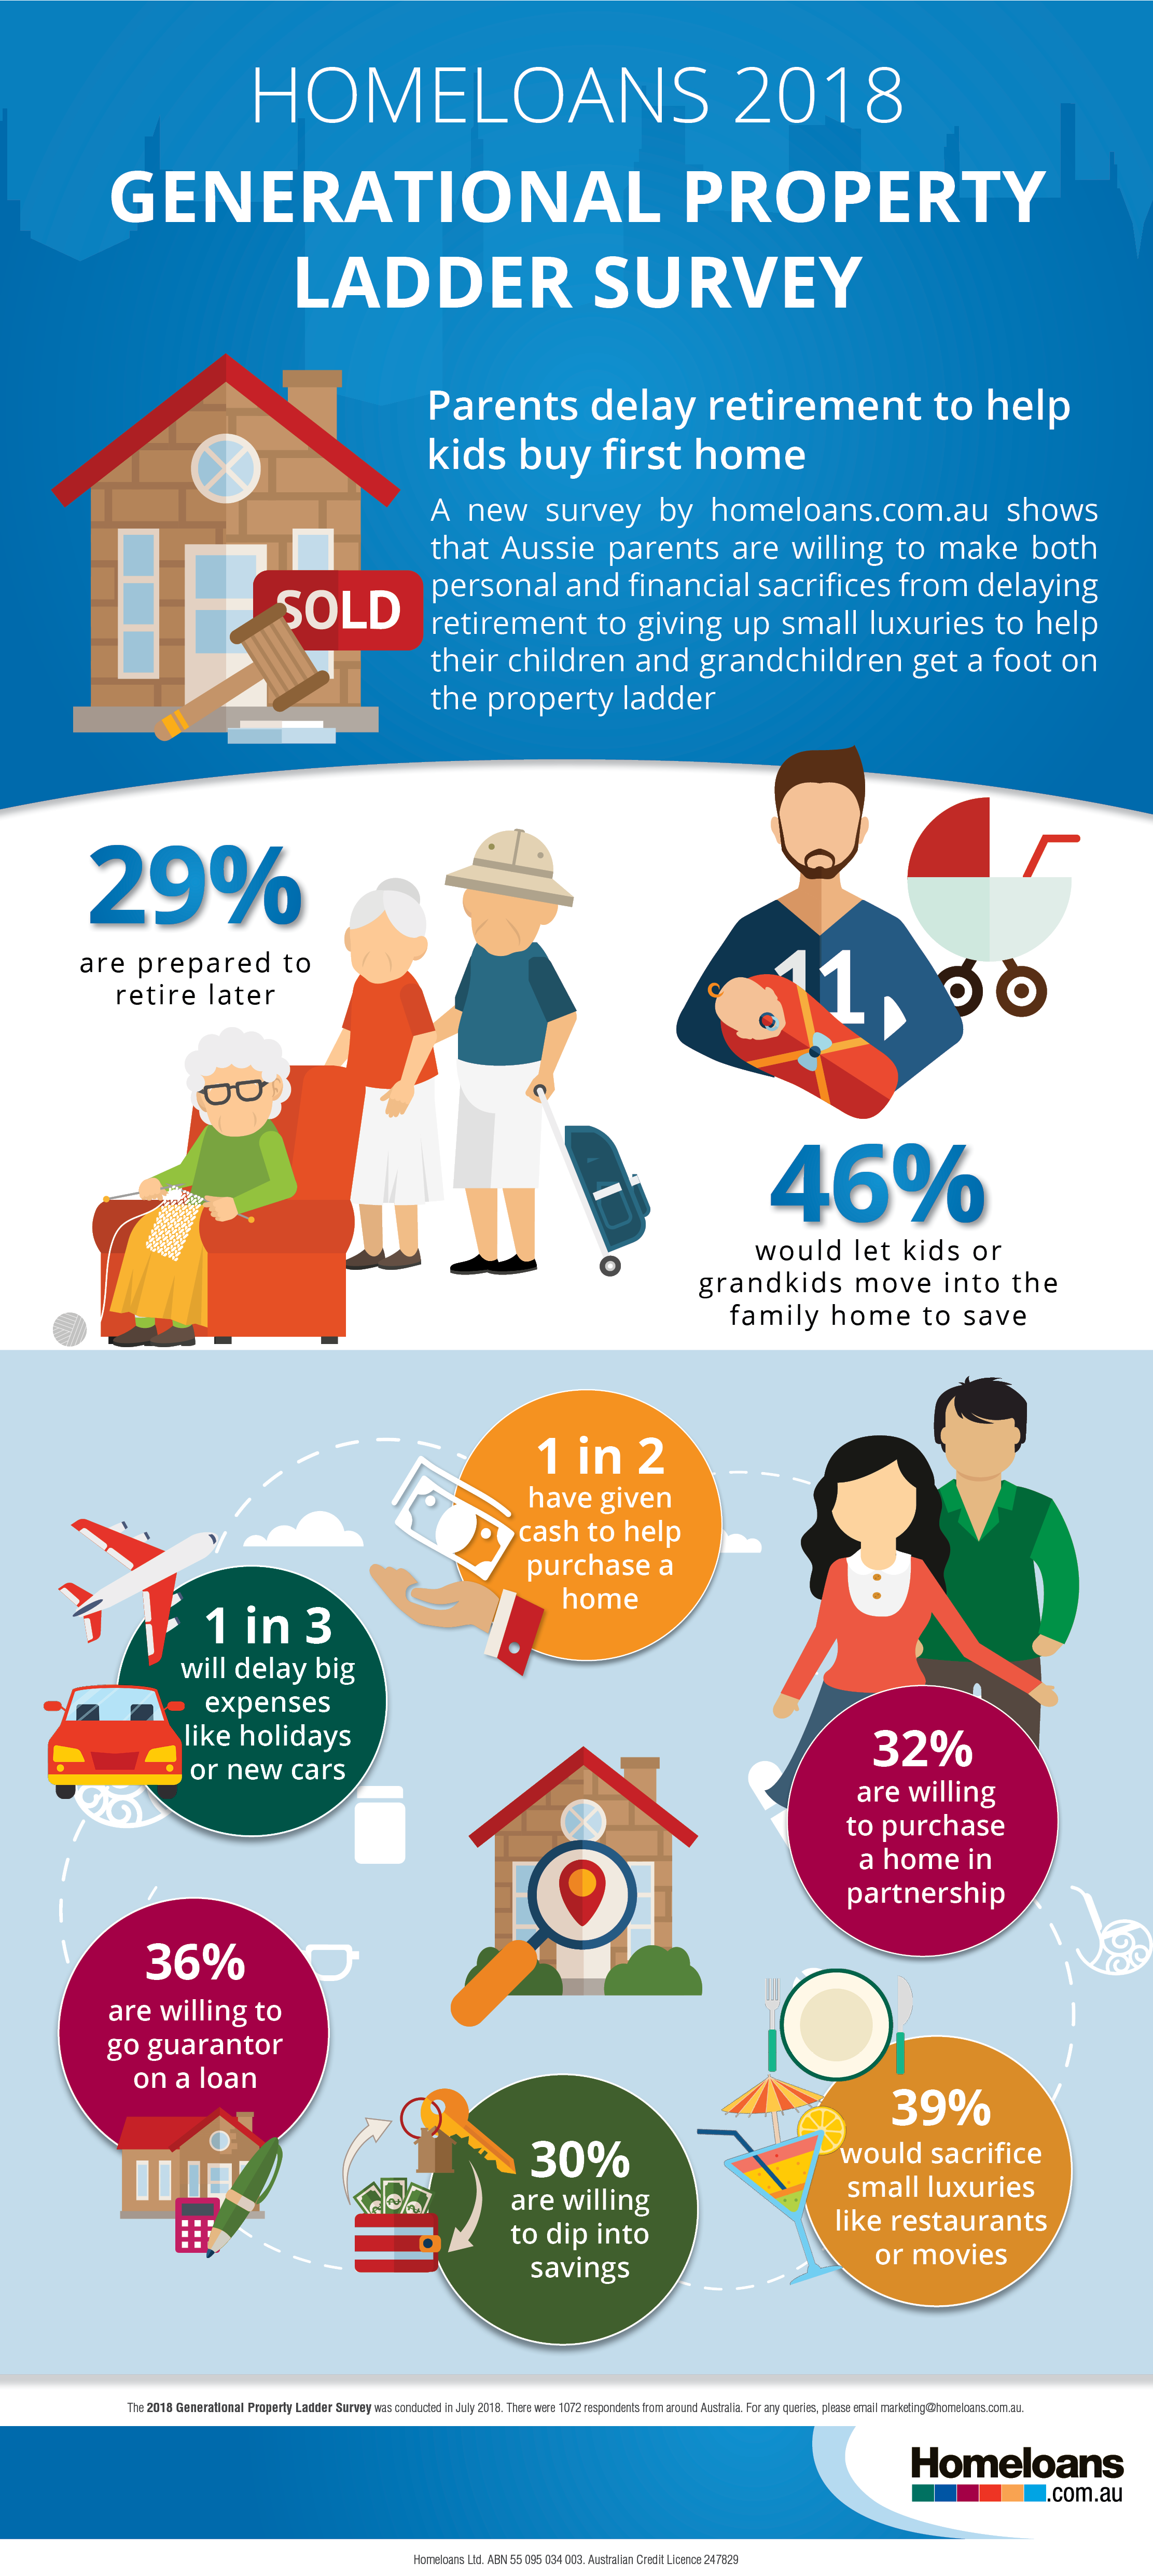 homeloans-2018-generational-property-ladder-survey-infographic